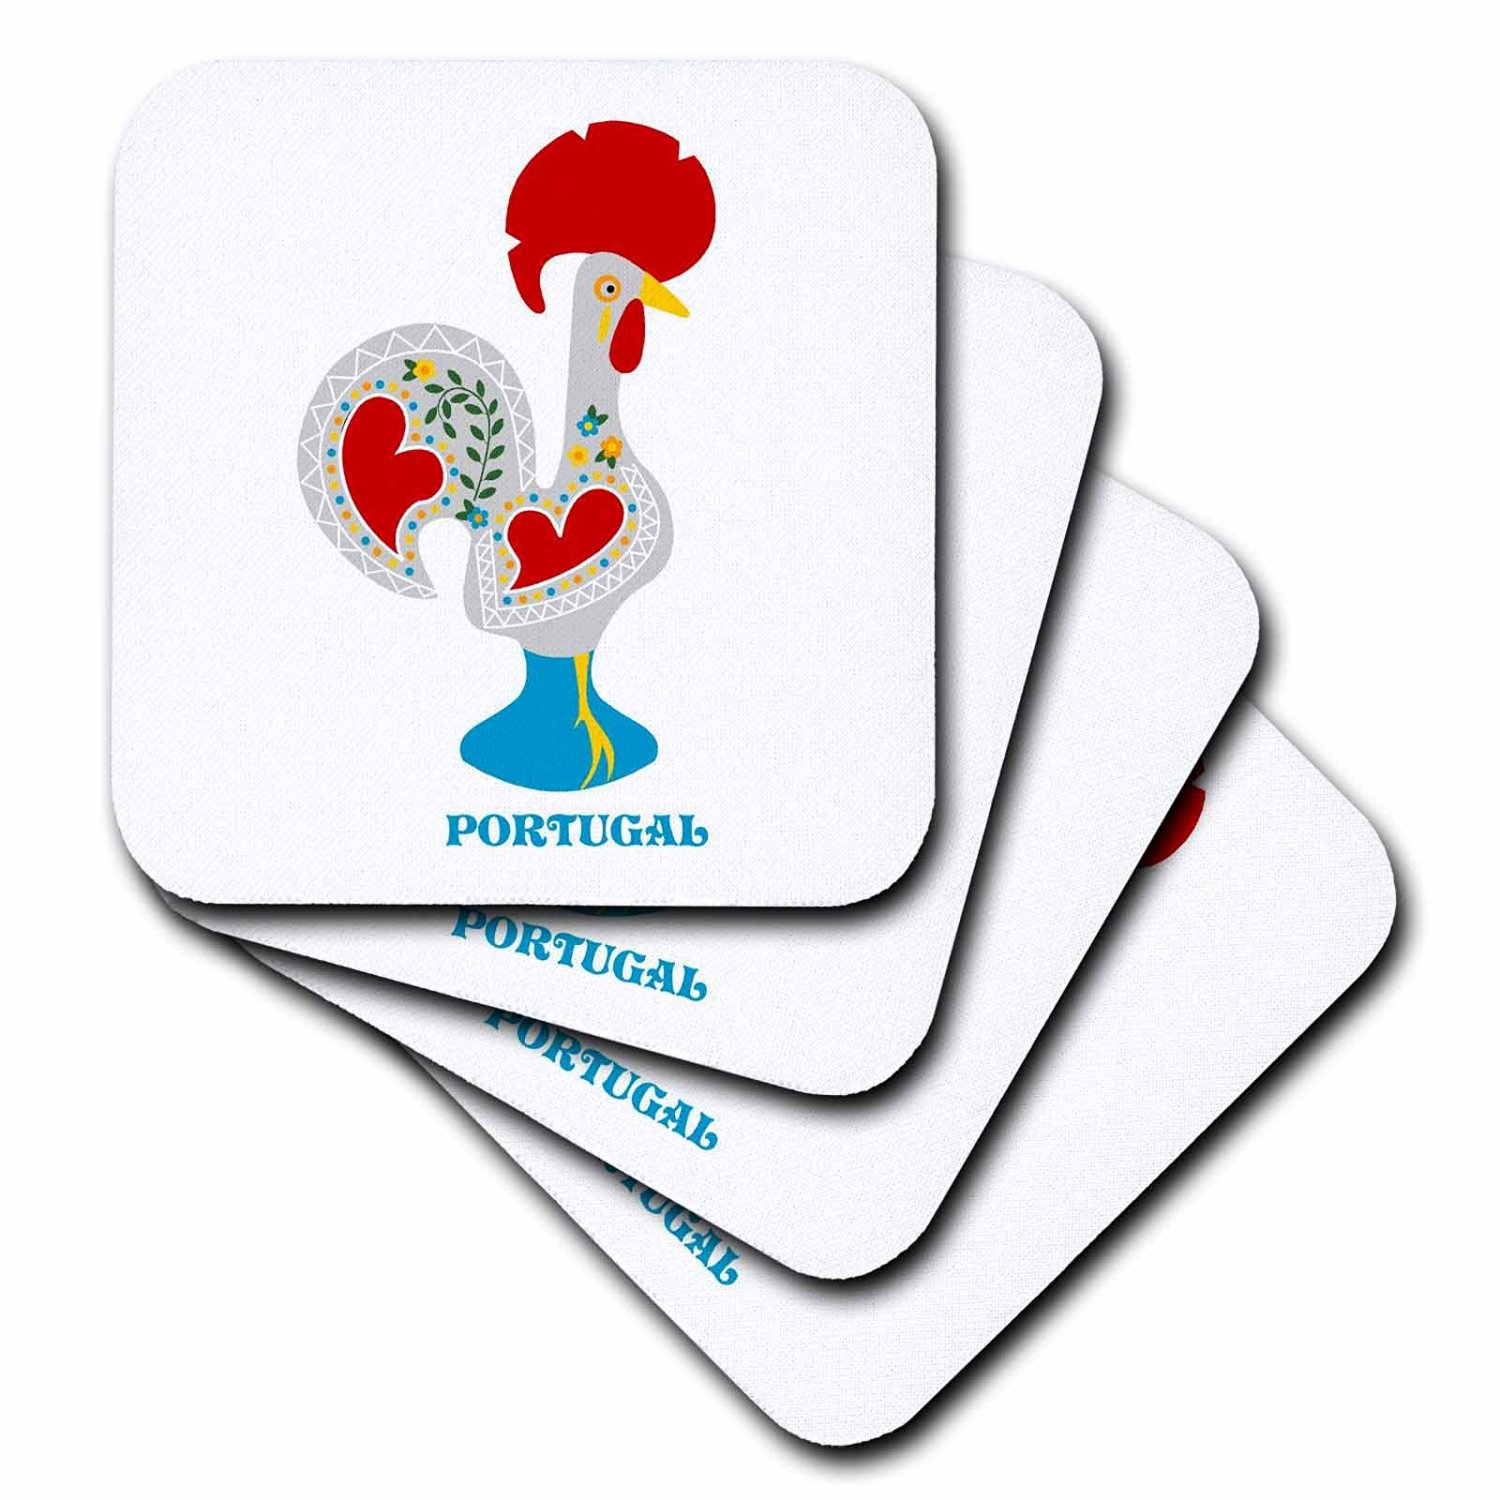 3dRose cst_160671_3 The White Portuguese Rooster or Galo De Barcelo's-Ceramic Tile Coasters, Set of 4